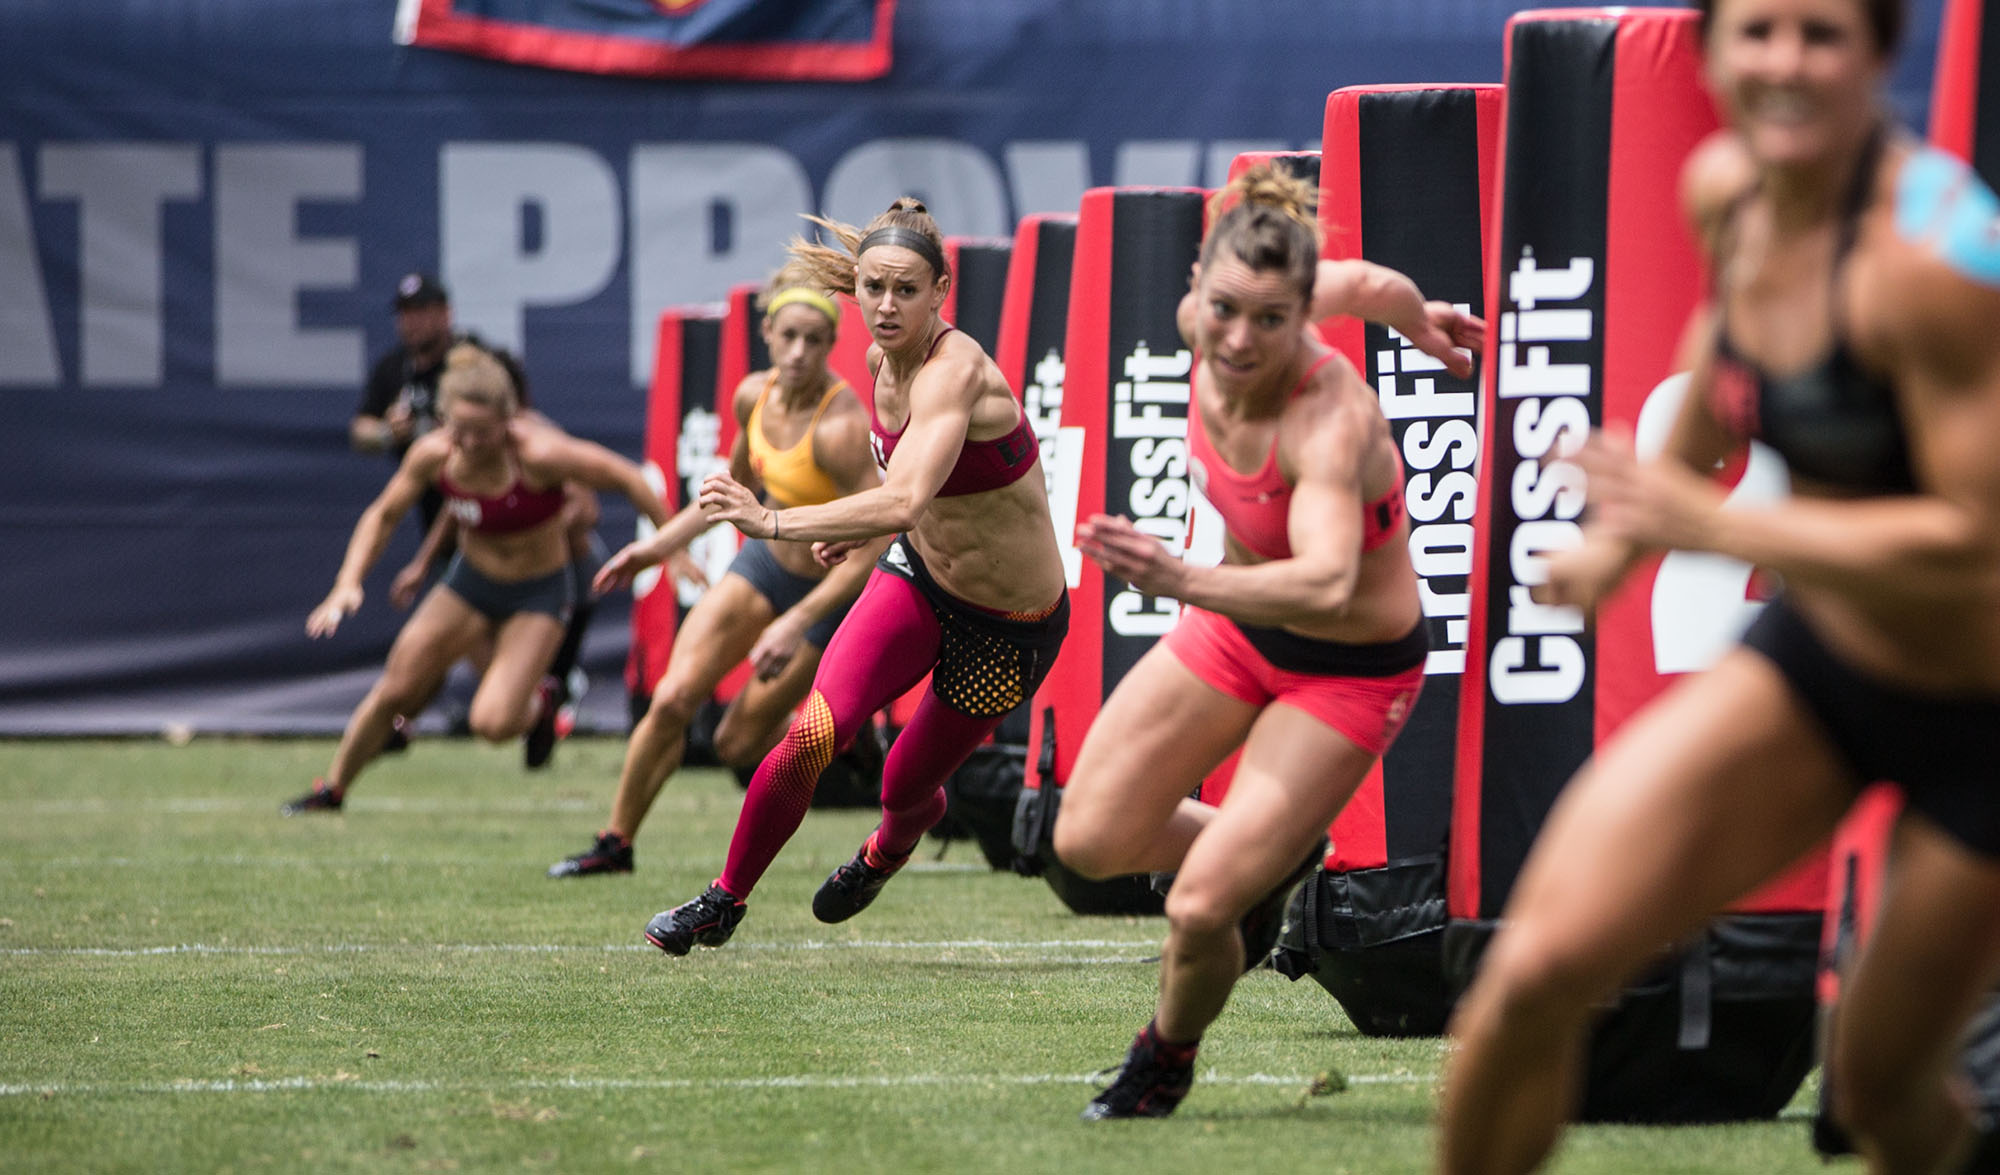 Photo: CrossFit Inc